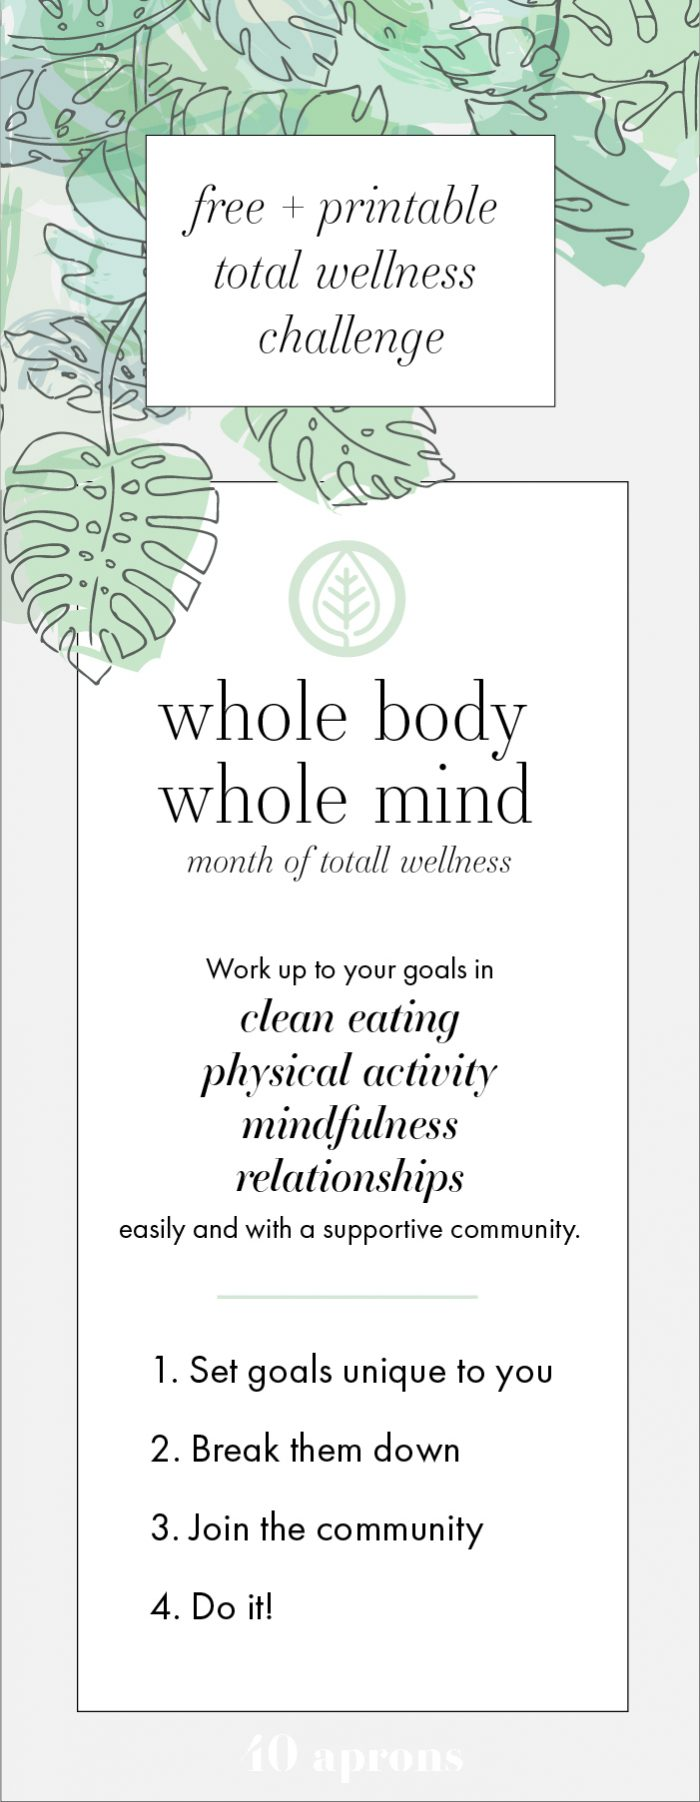 Whole Body Whole Mind Wellness Challenge is a free monthlong challenge that helps you work up to your goals: clean eating goals, physical activity goals, mindfulness goals, and relationship goals. This wellness challenge is more than just a clean eating challenge, it's motivation to put healthy habits in place for good. This printable challenge is totally free, too.